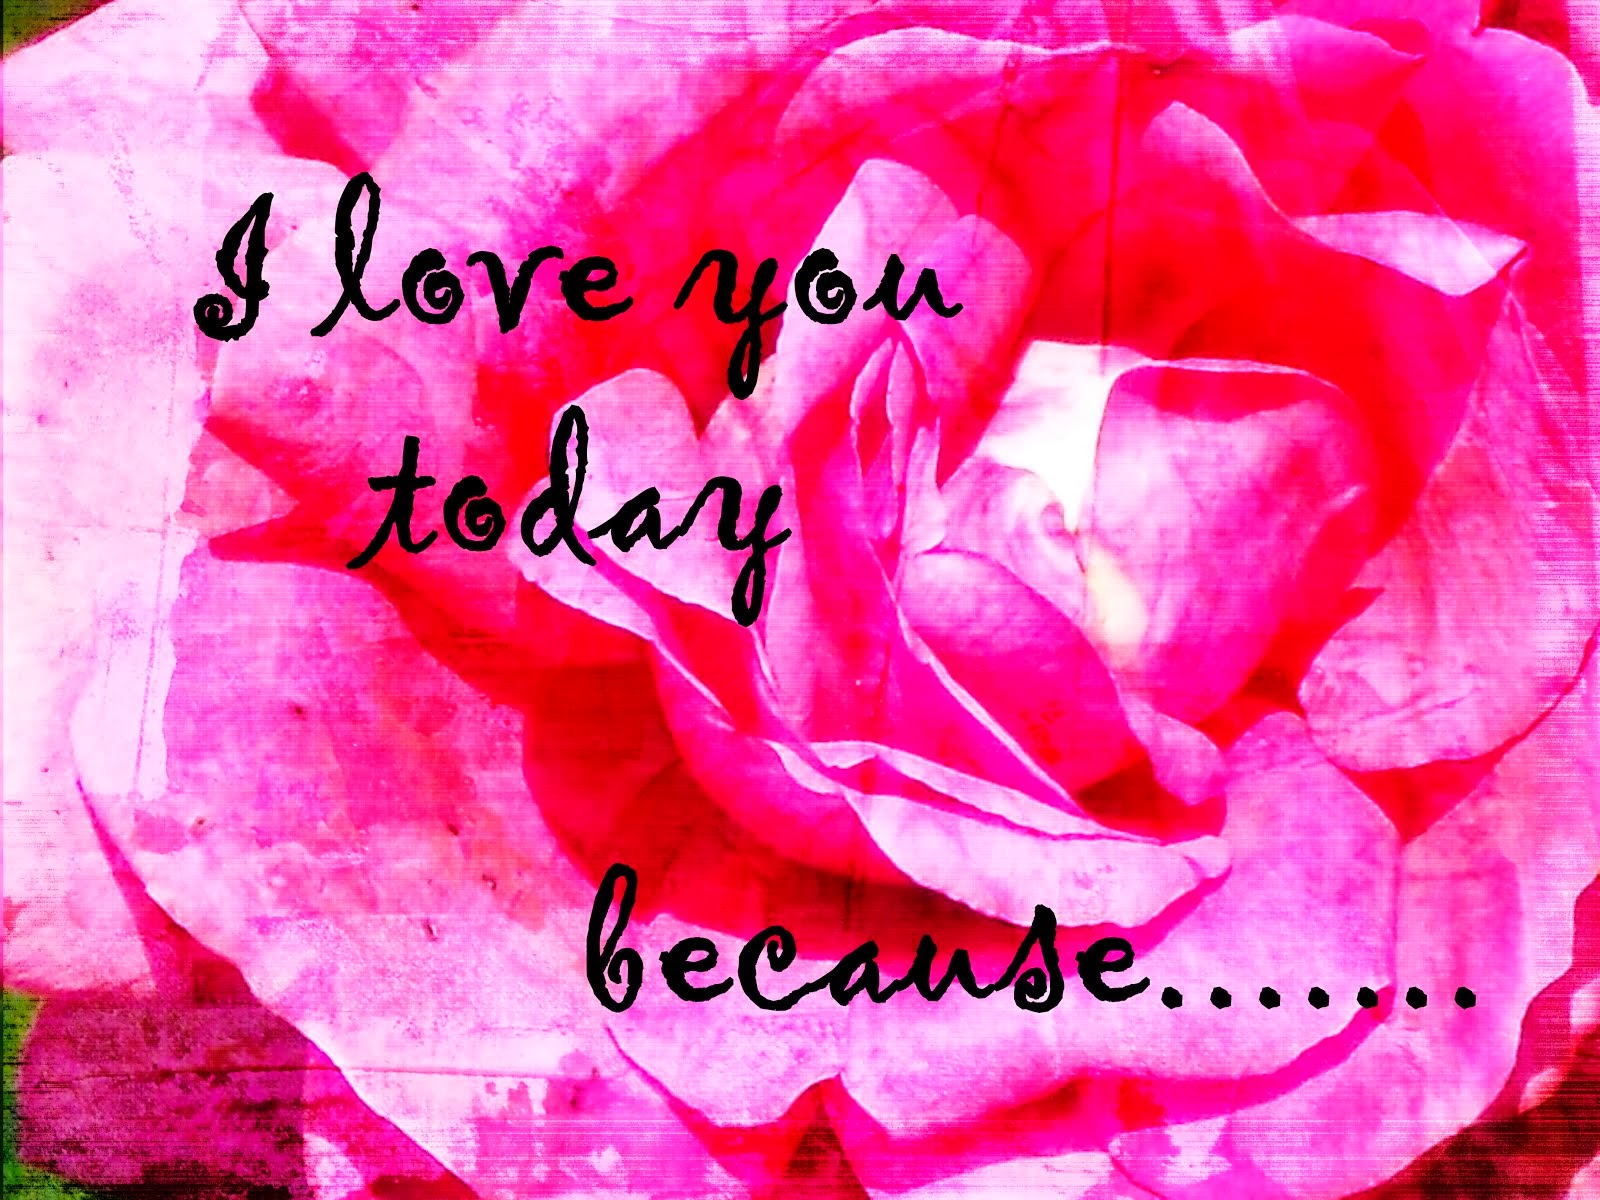 I love you today ....